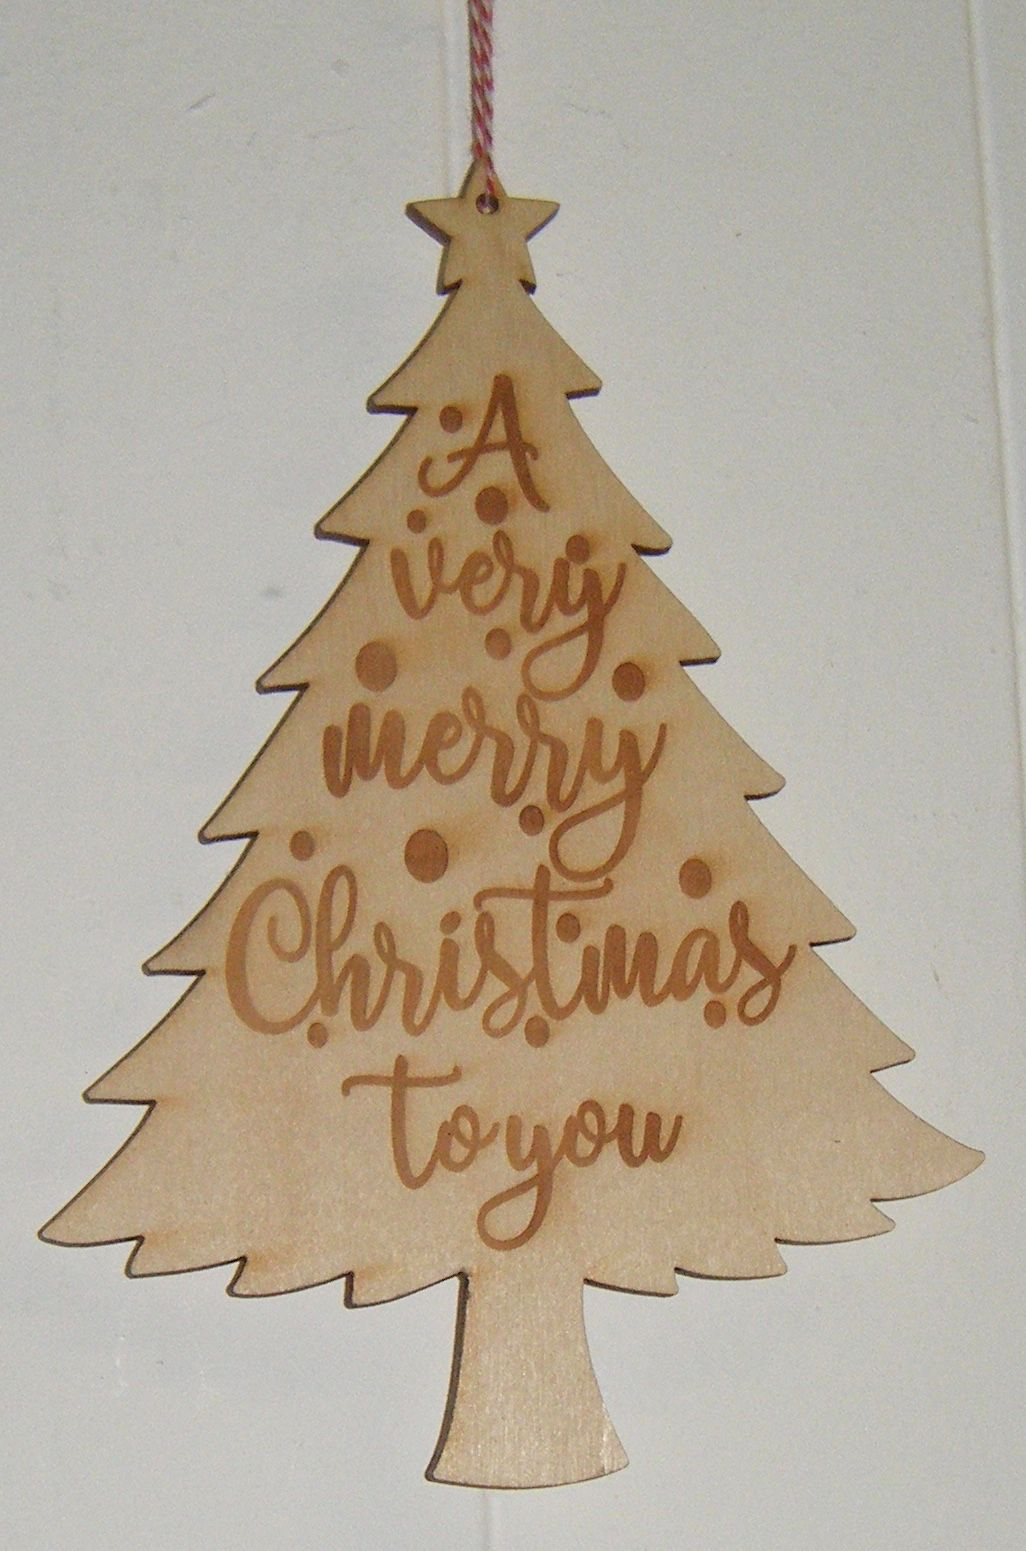 A Very Merry Christmas to You - Wooden Engraved Christmas Tree